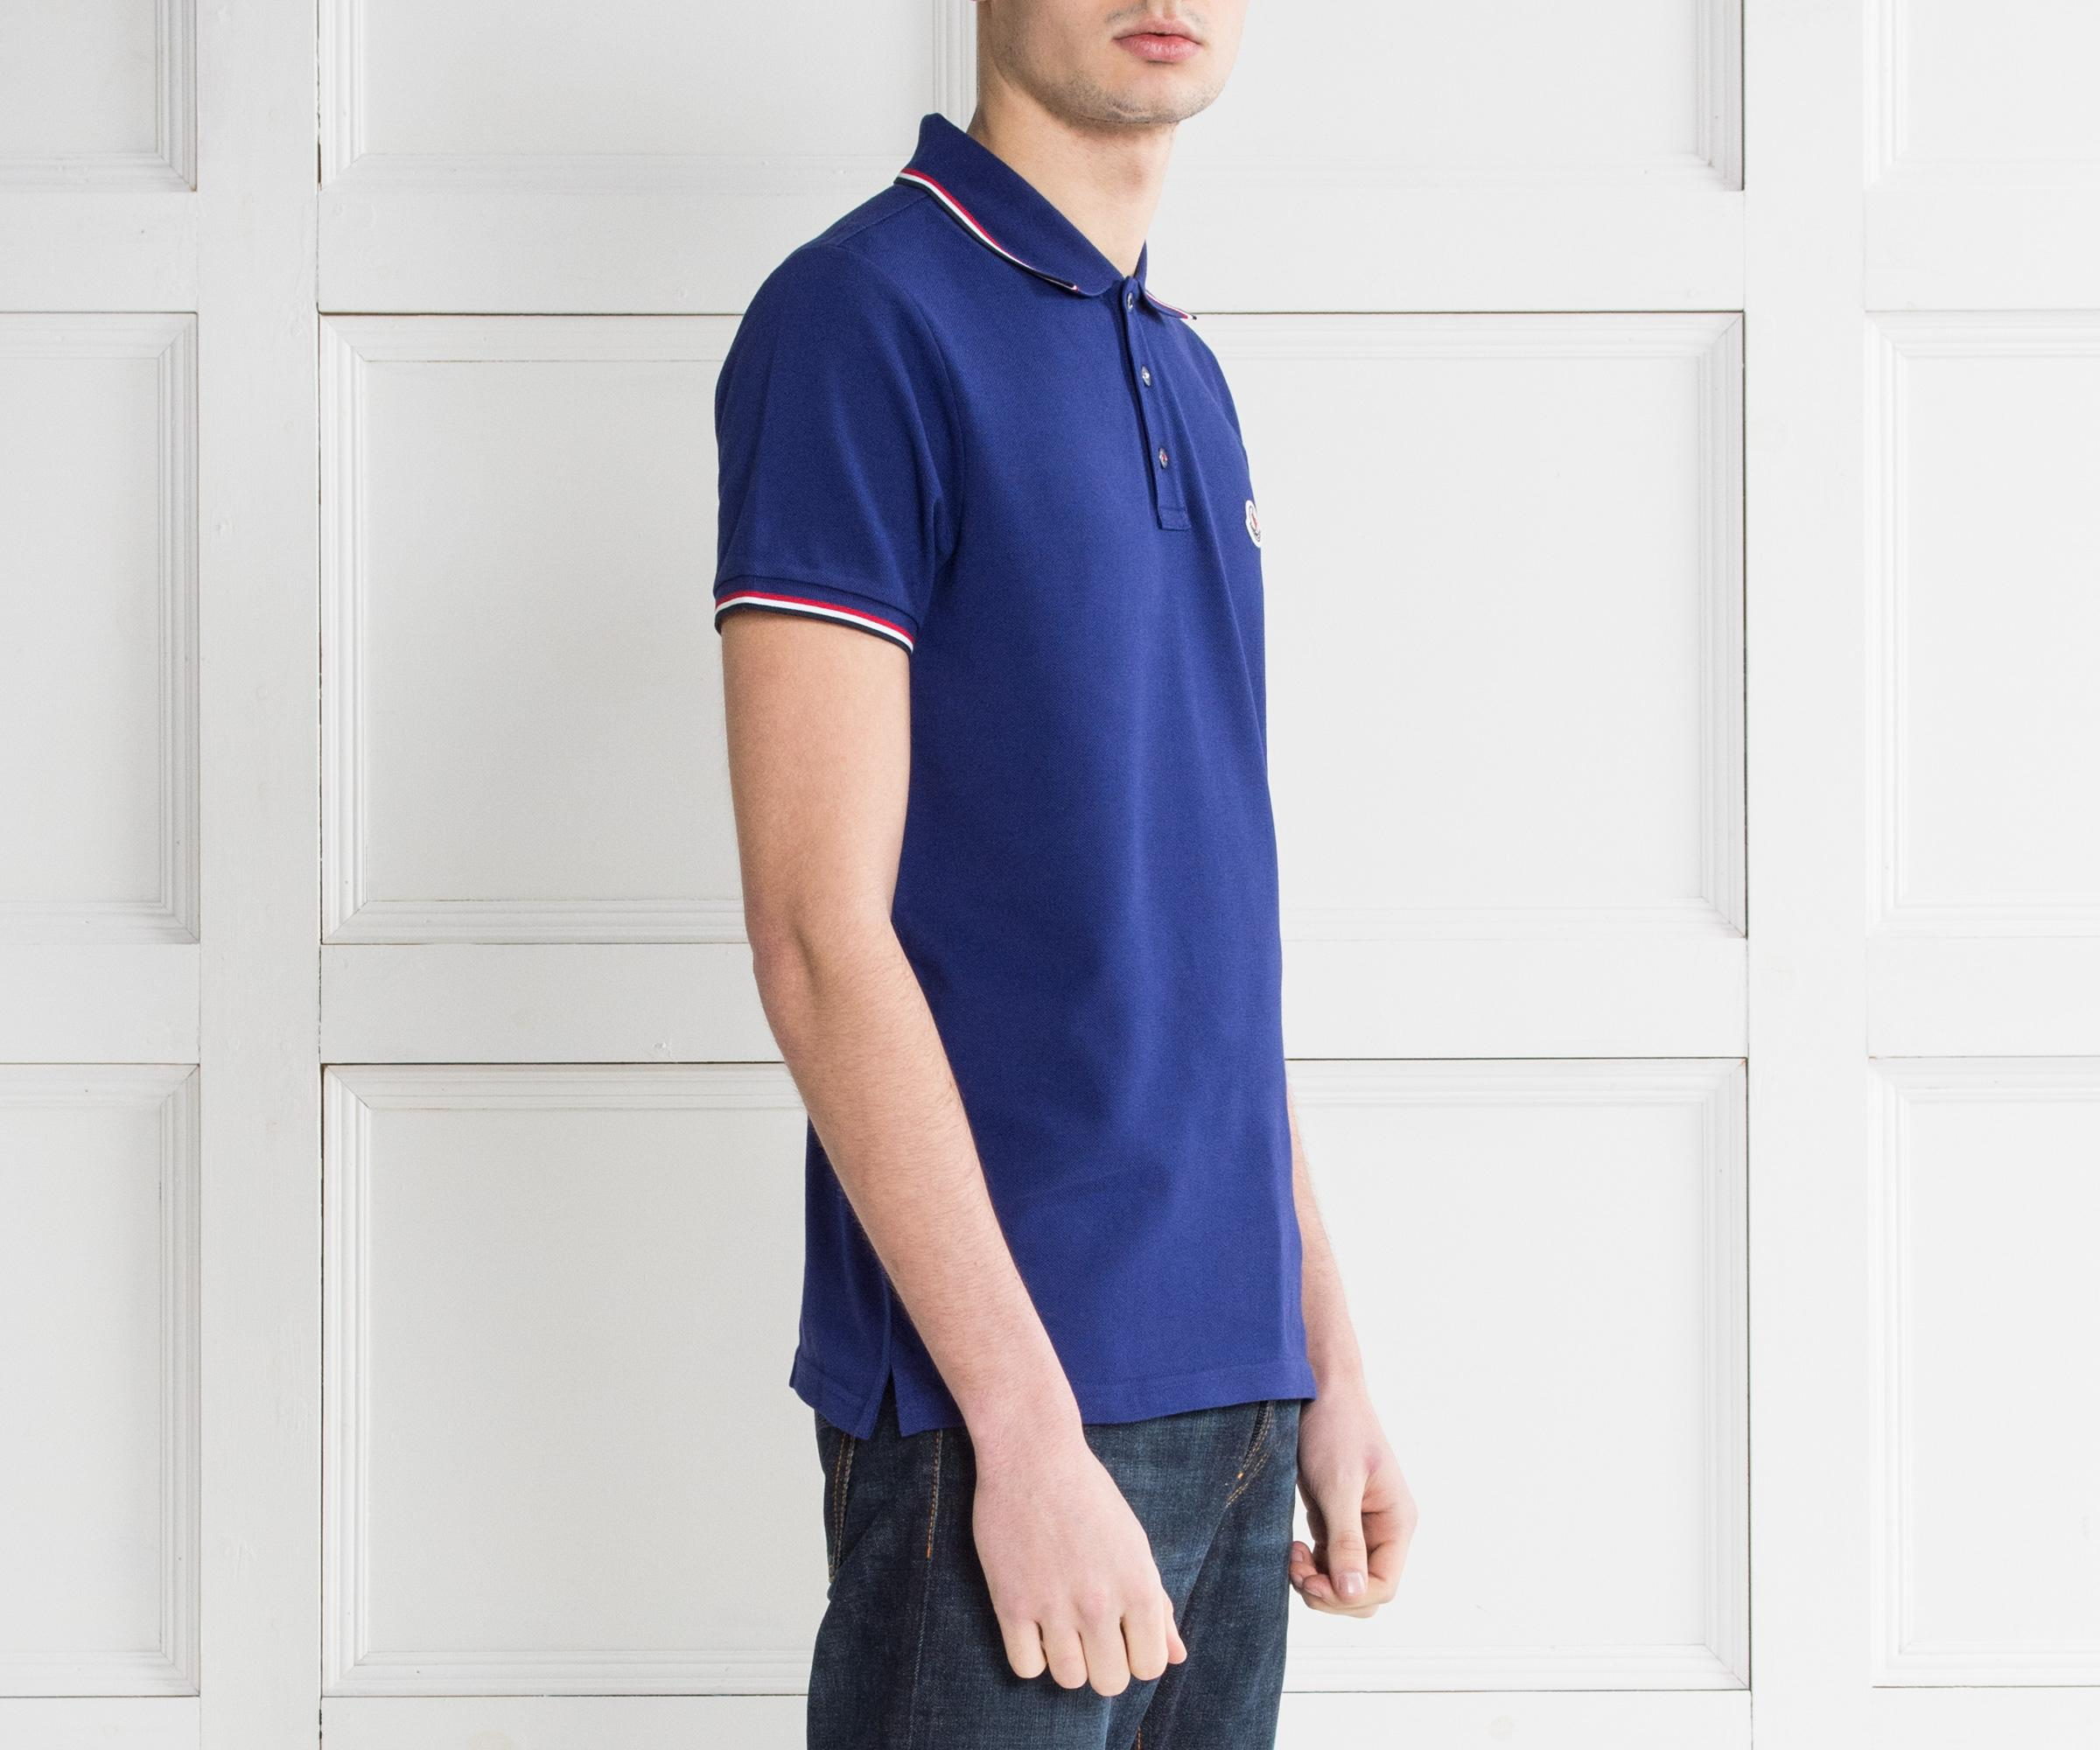 moncler royal blue polo shirt